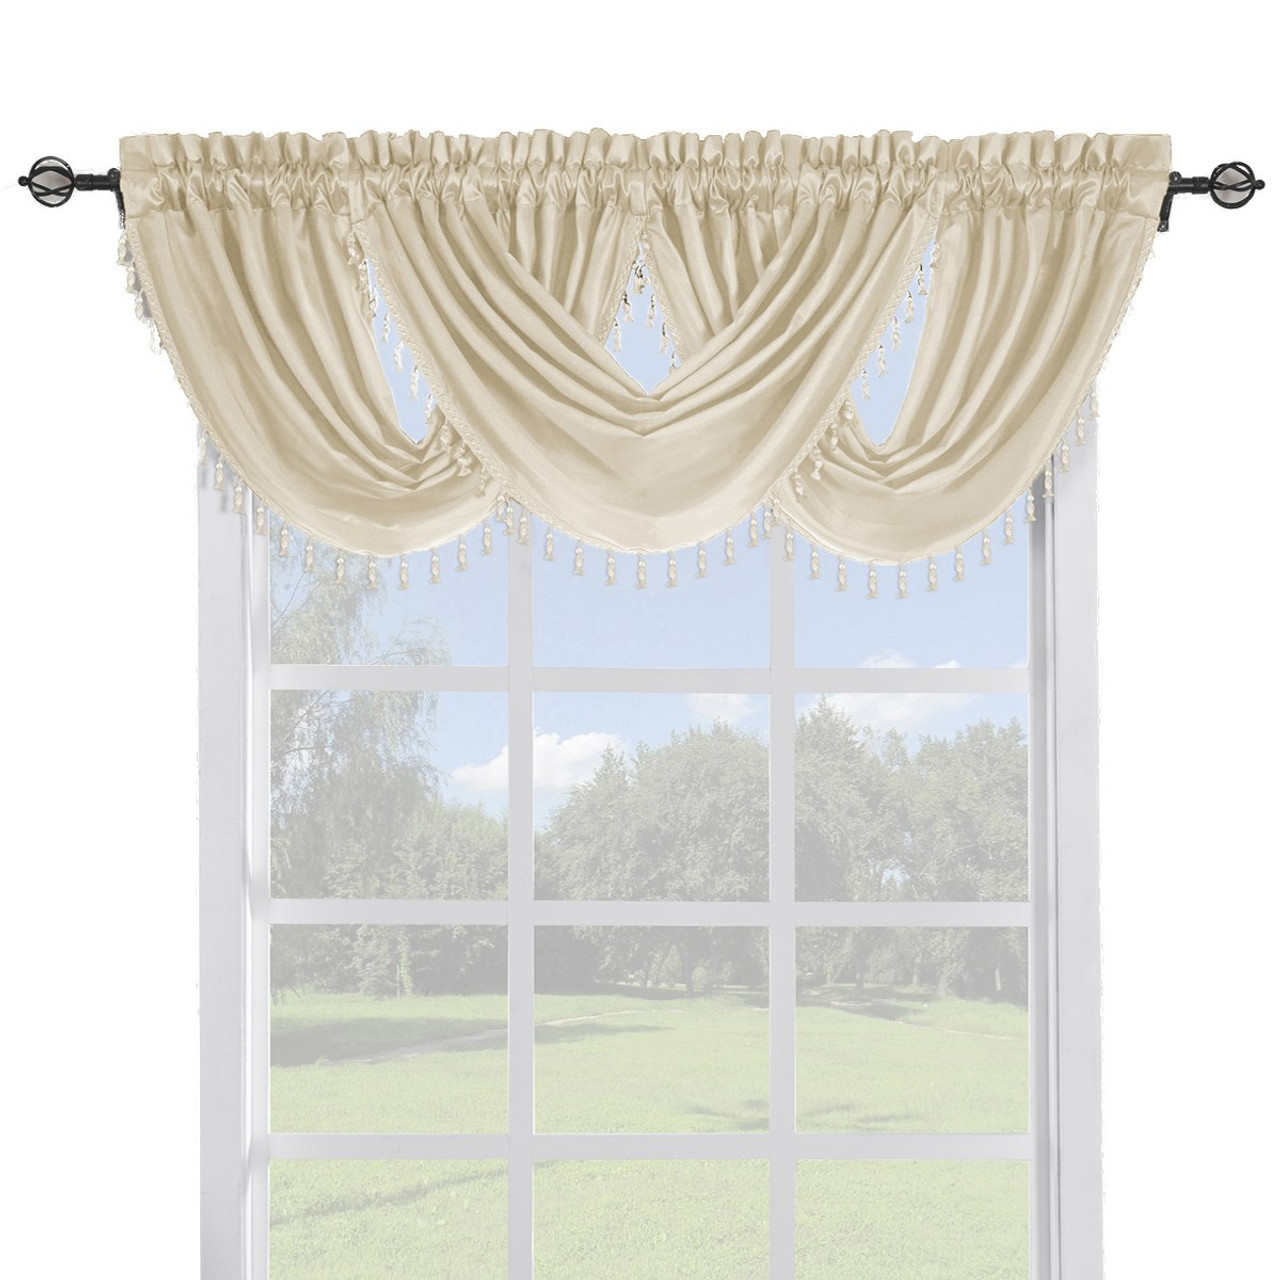 Soho Faux Silk Curtain Panels Or Waterfall Valance Single